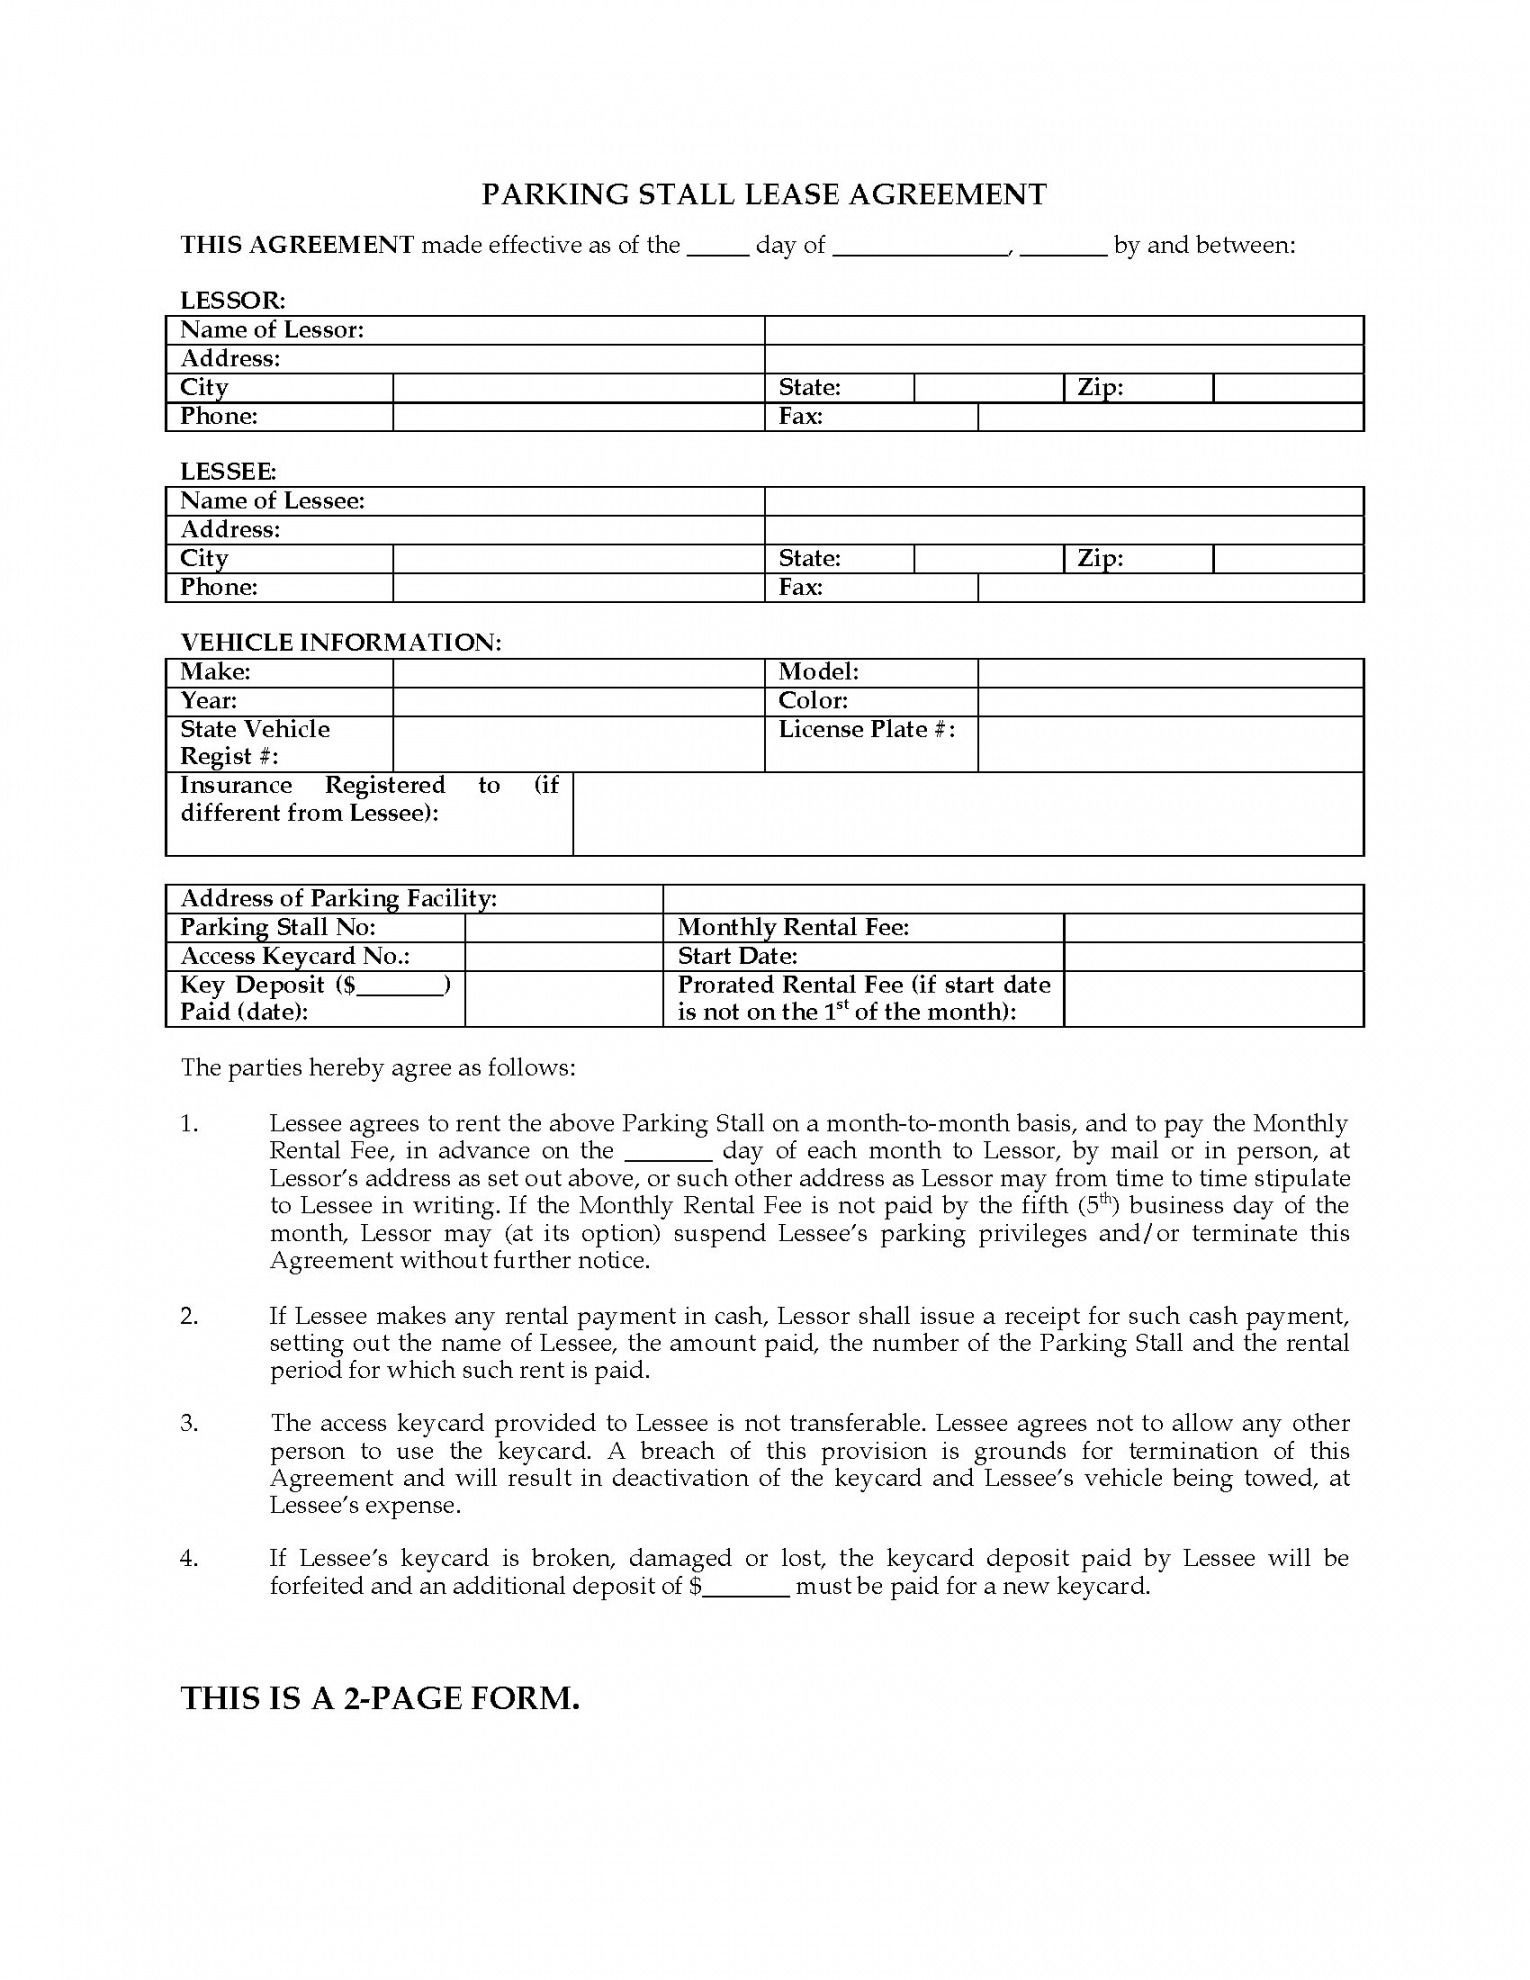 Image Result For Generic Room Rental Agreement Room Rental Agreement Rental Agreement Templates Lease Agreement